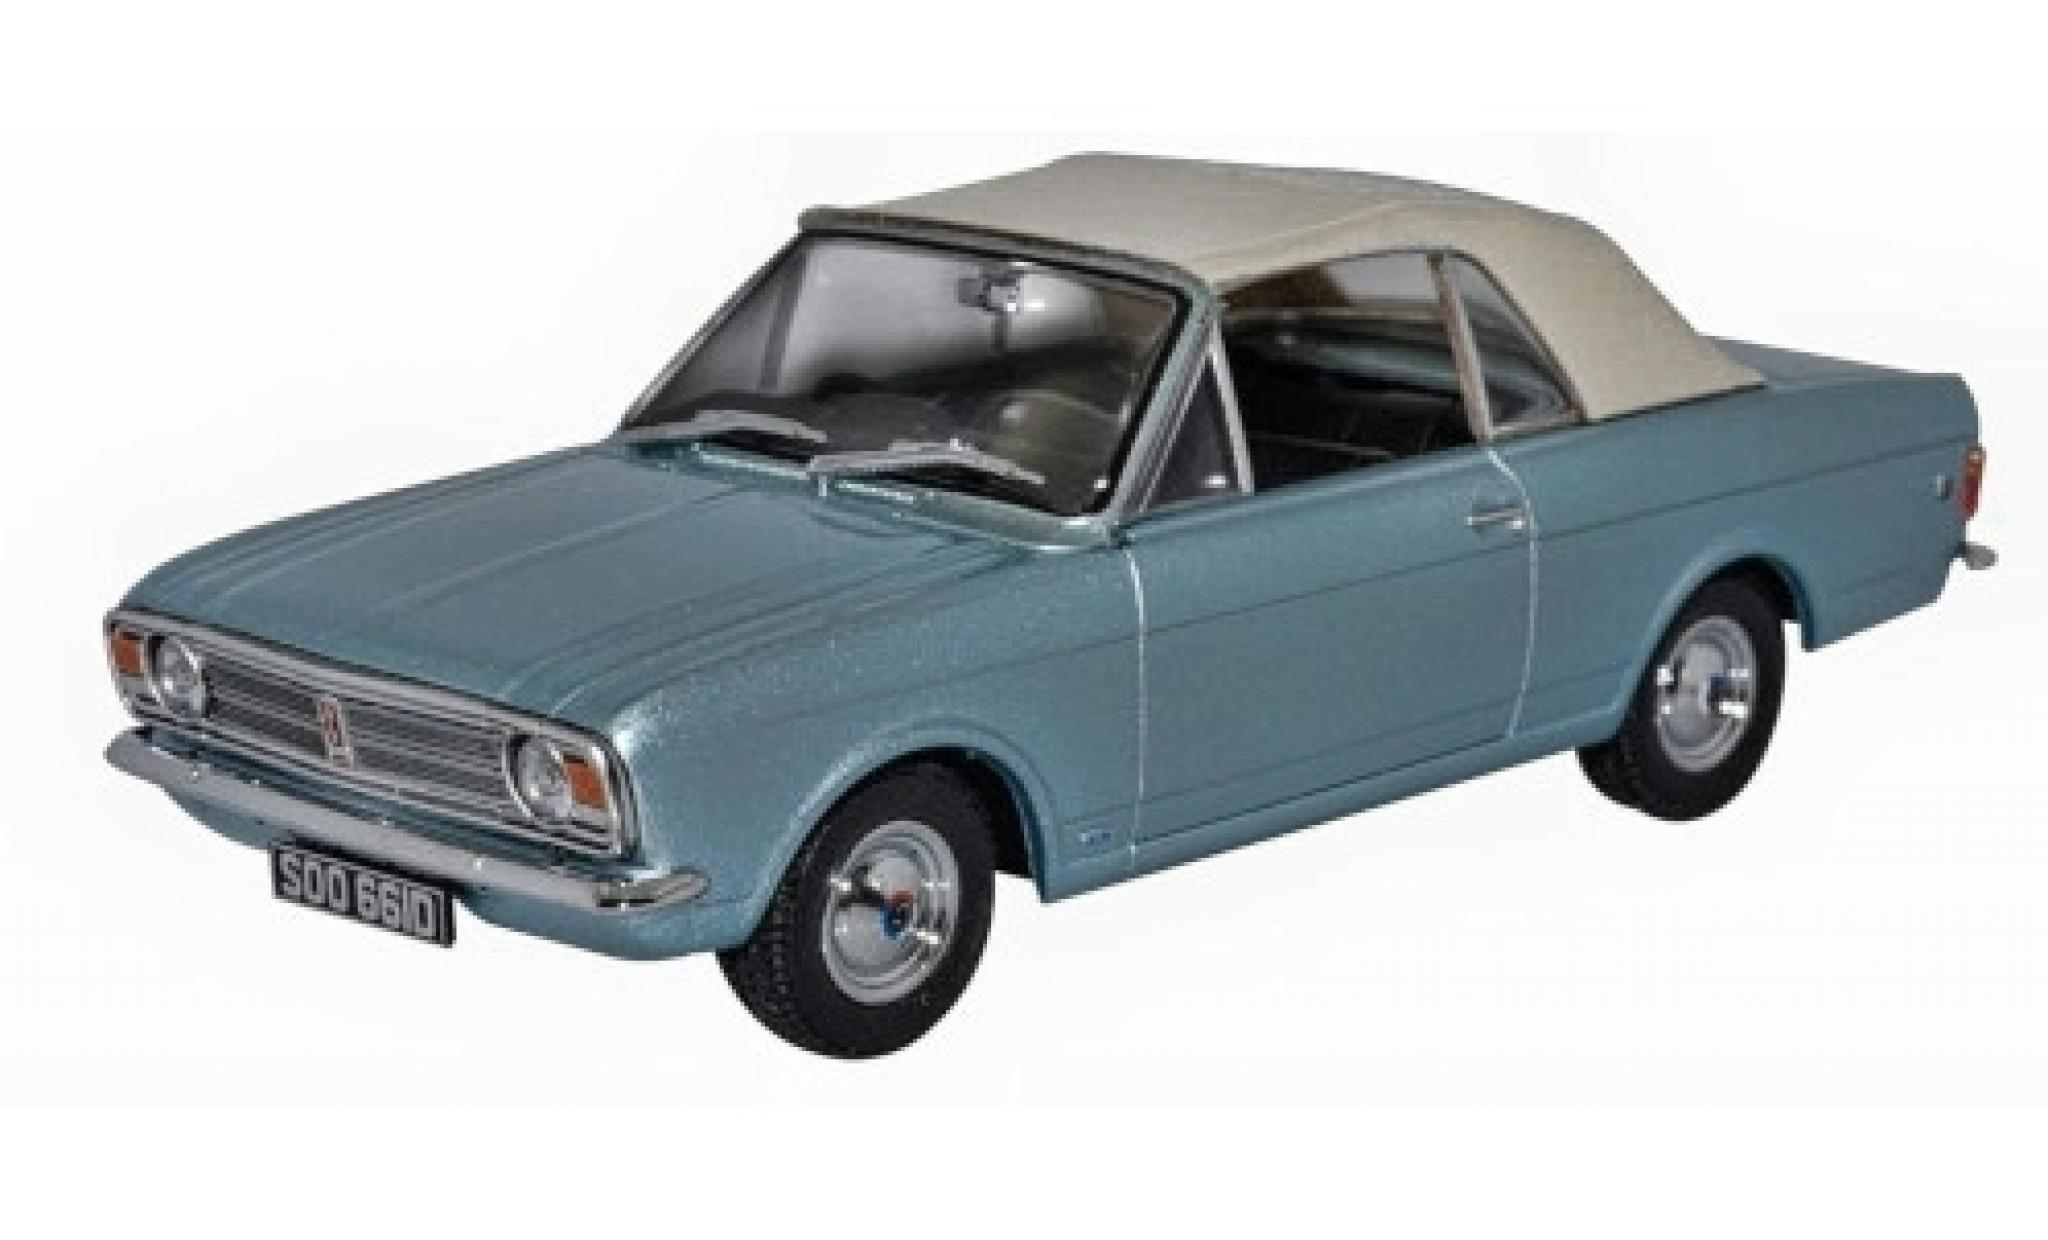 Ford Cortina 1/43 Oxford MKII Crayford Convertible metallise blue/white RHD